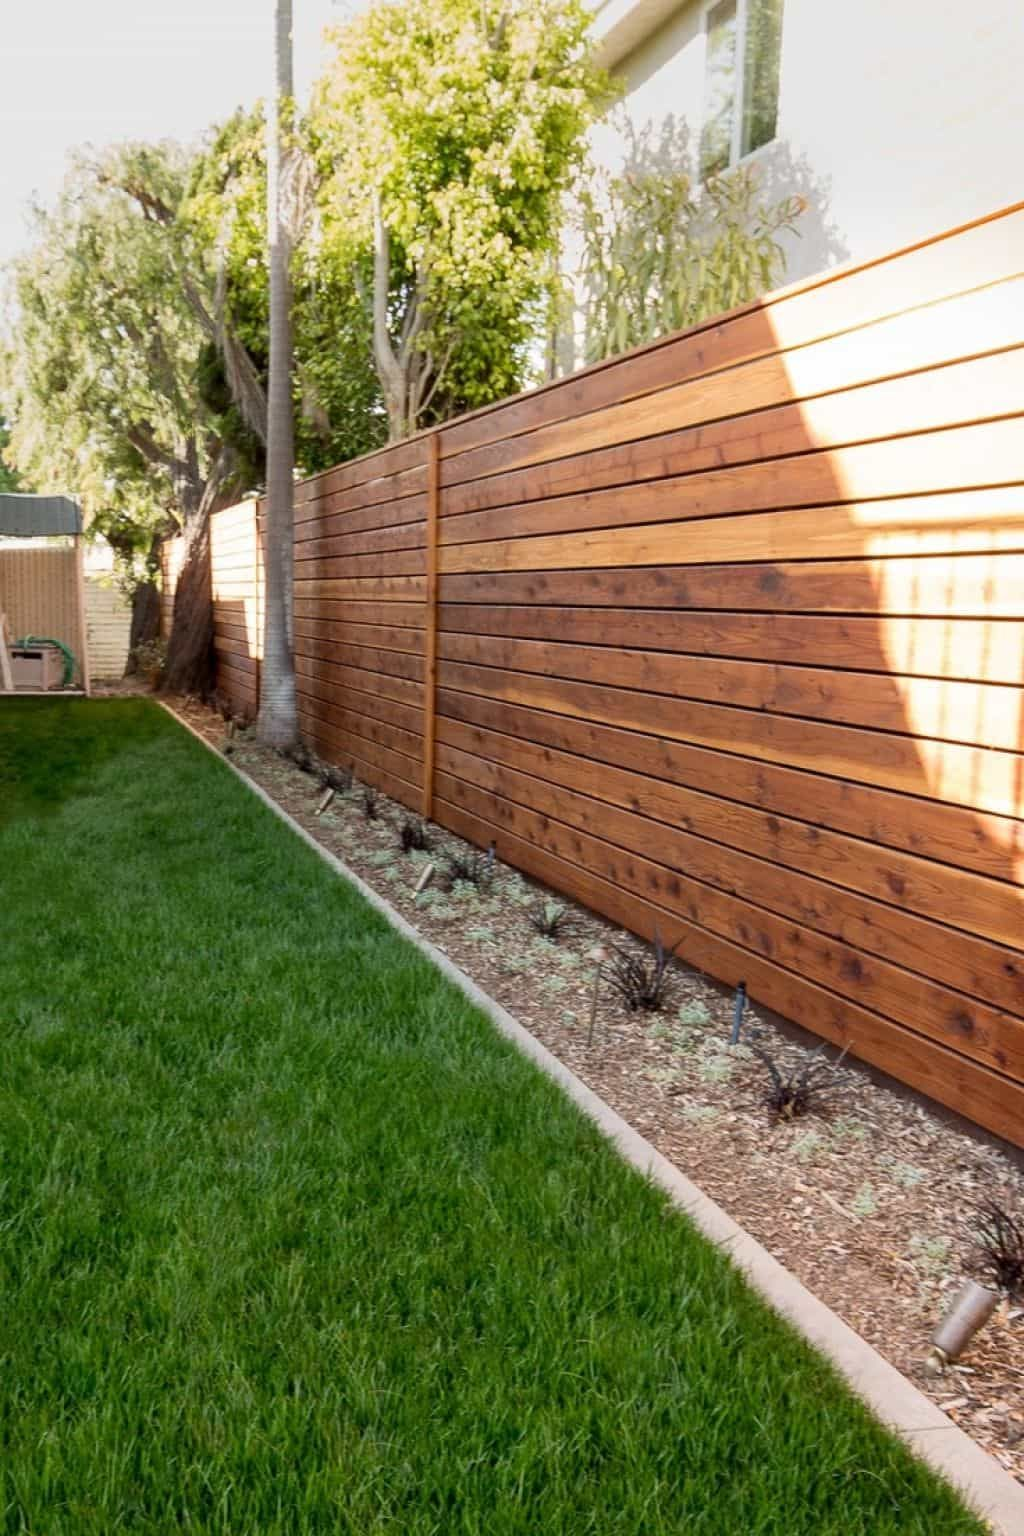 Ways To Installing Garden Fences | Garden fencing, Fences and Gardens